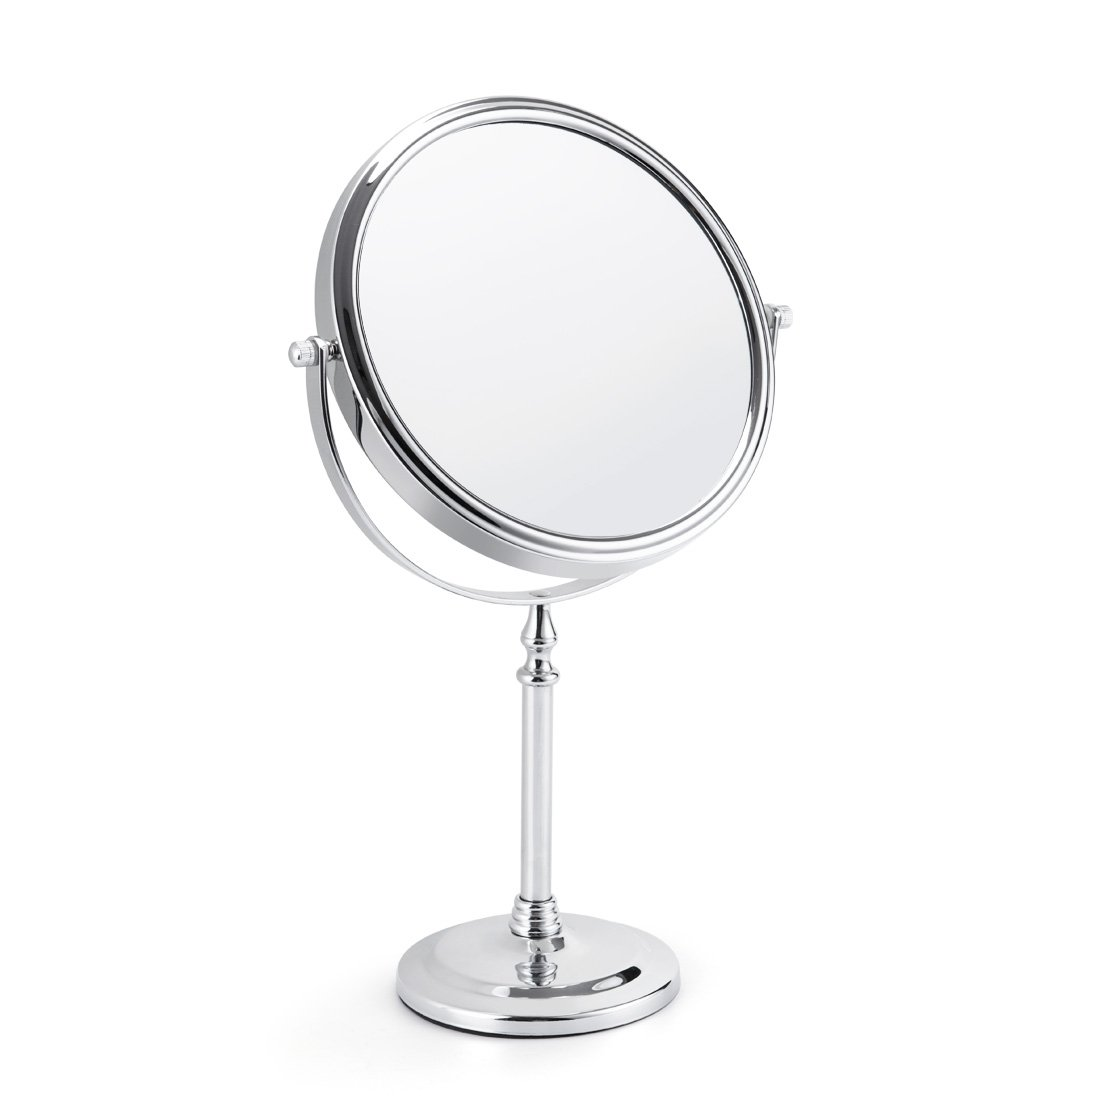 Makeup Vanity Mirror 5X Magnifying Two-side Tabletop Swivel Comestic Mirror Chrome Finish 15-inch Height Silver